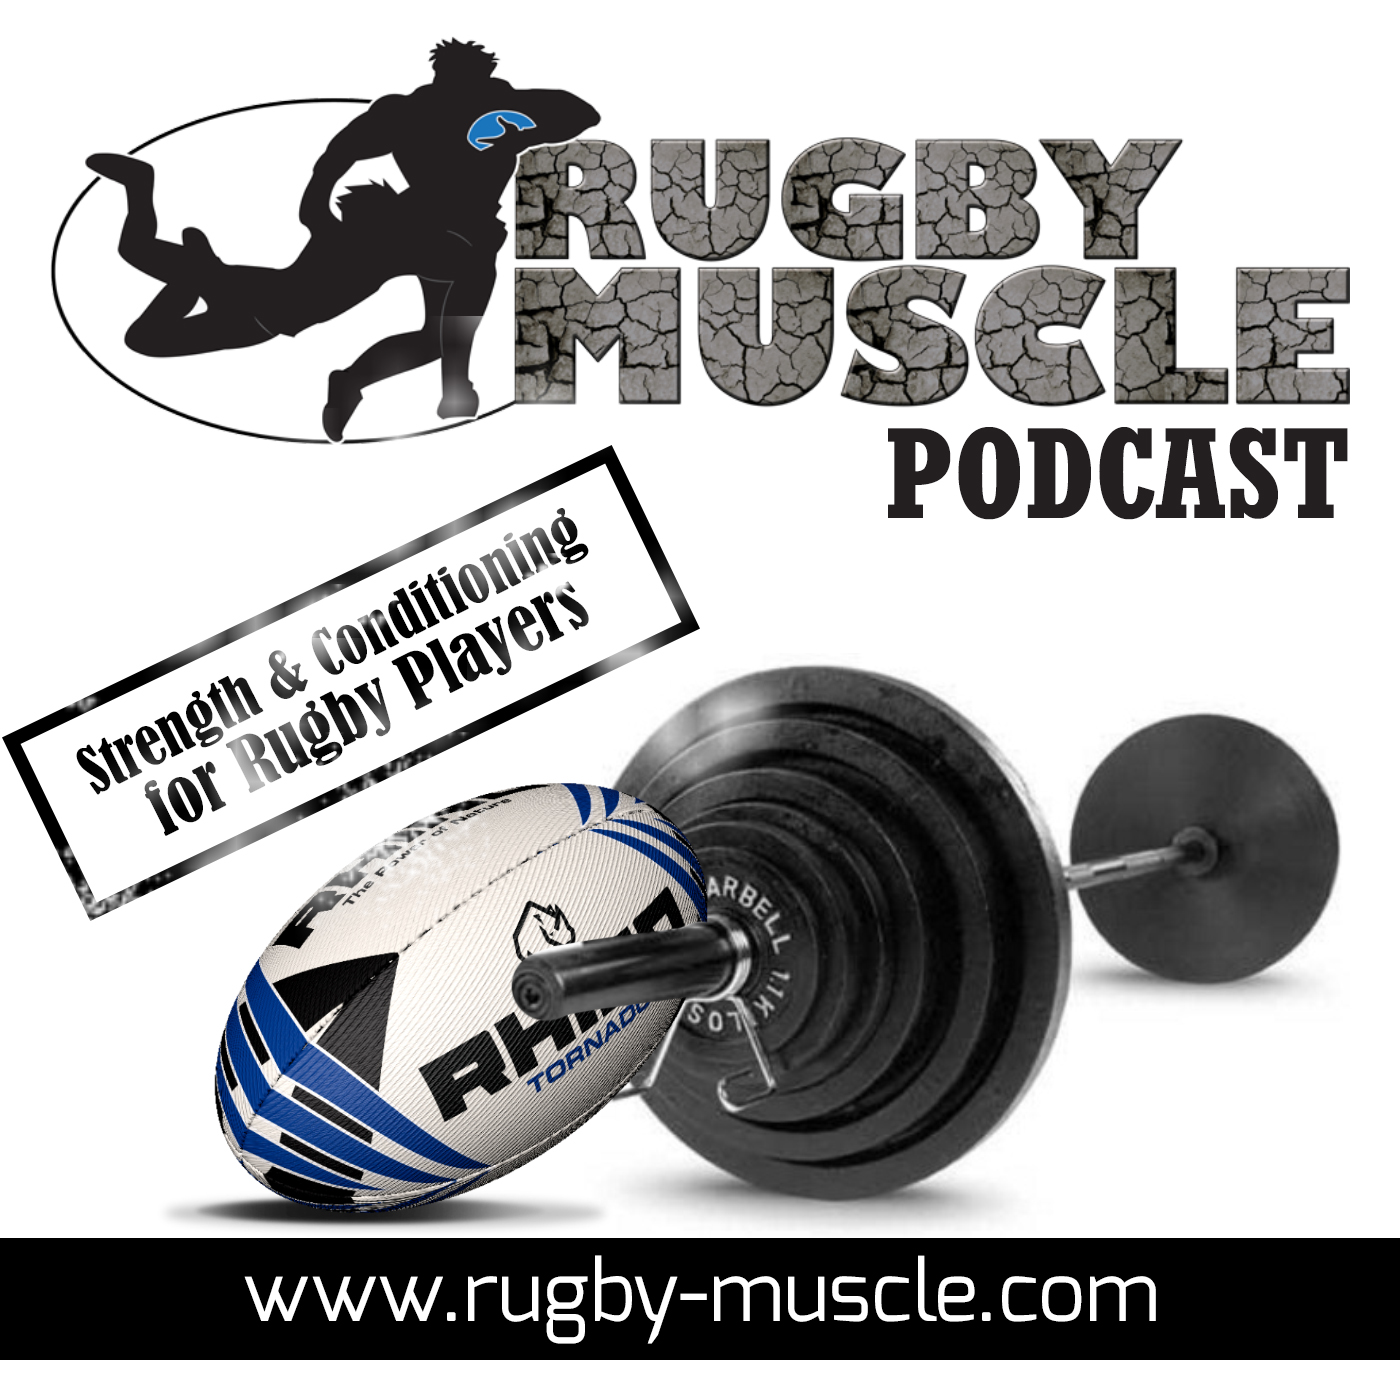 The Rugby Muscle Podcast